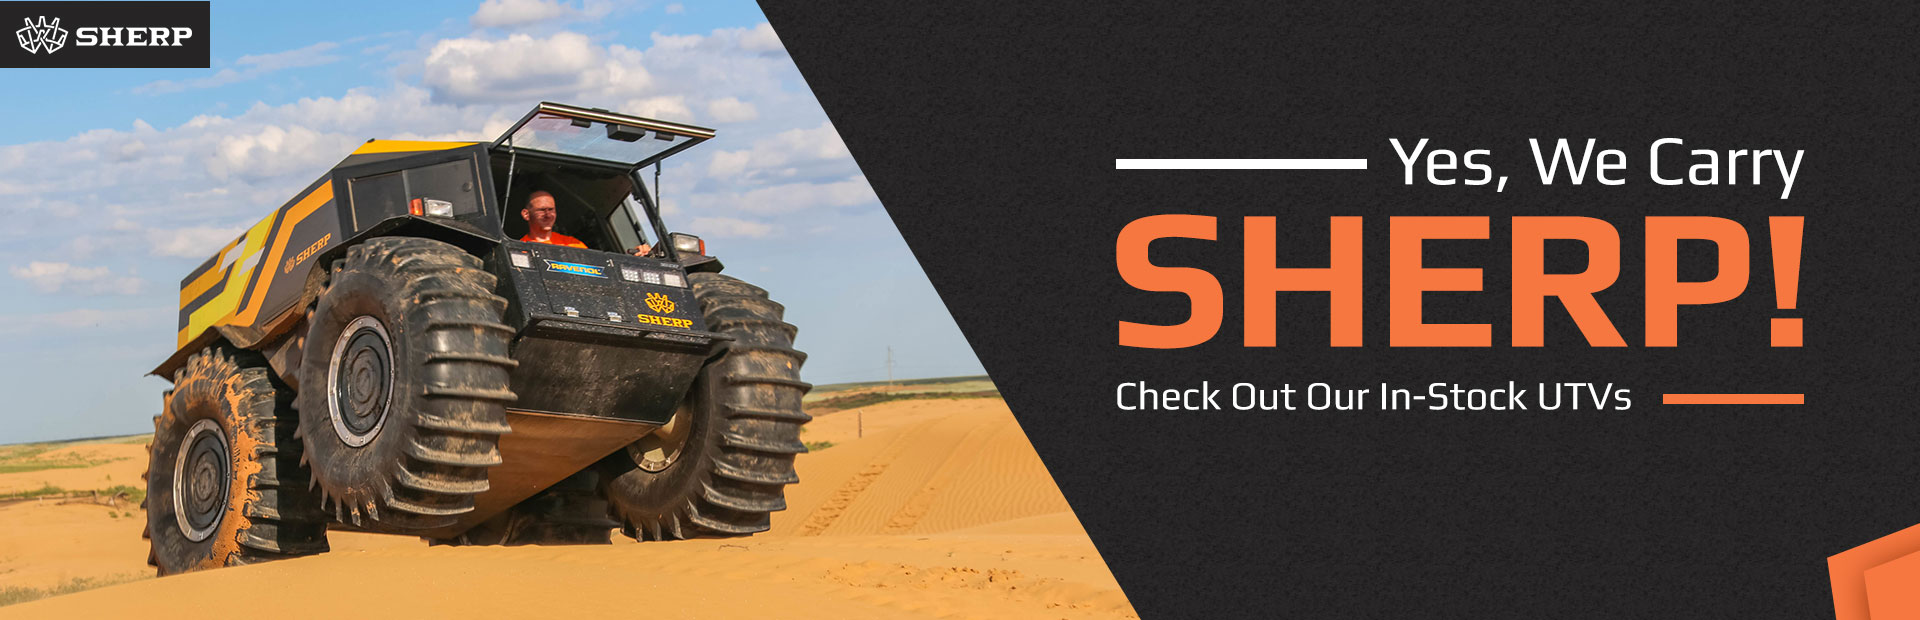 Yes, we carry SHERP! Check out our in-stock UTVs.